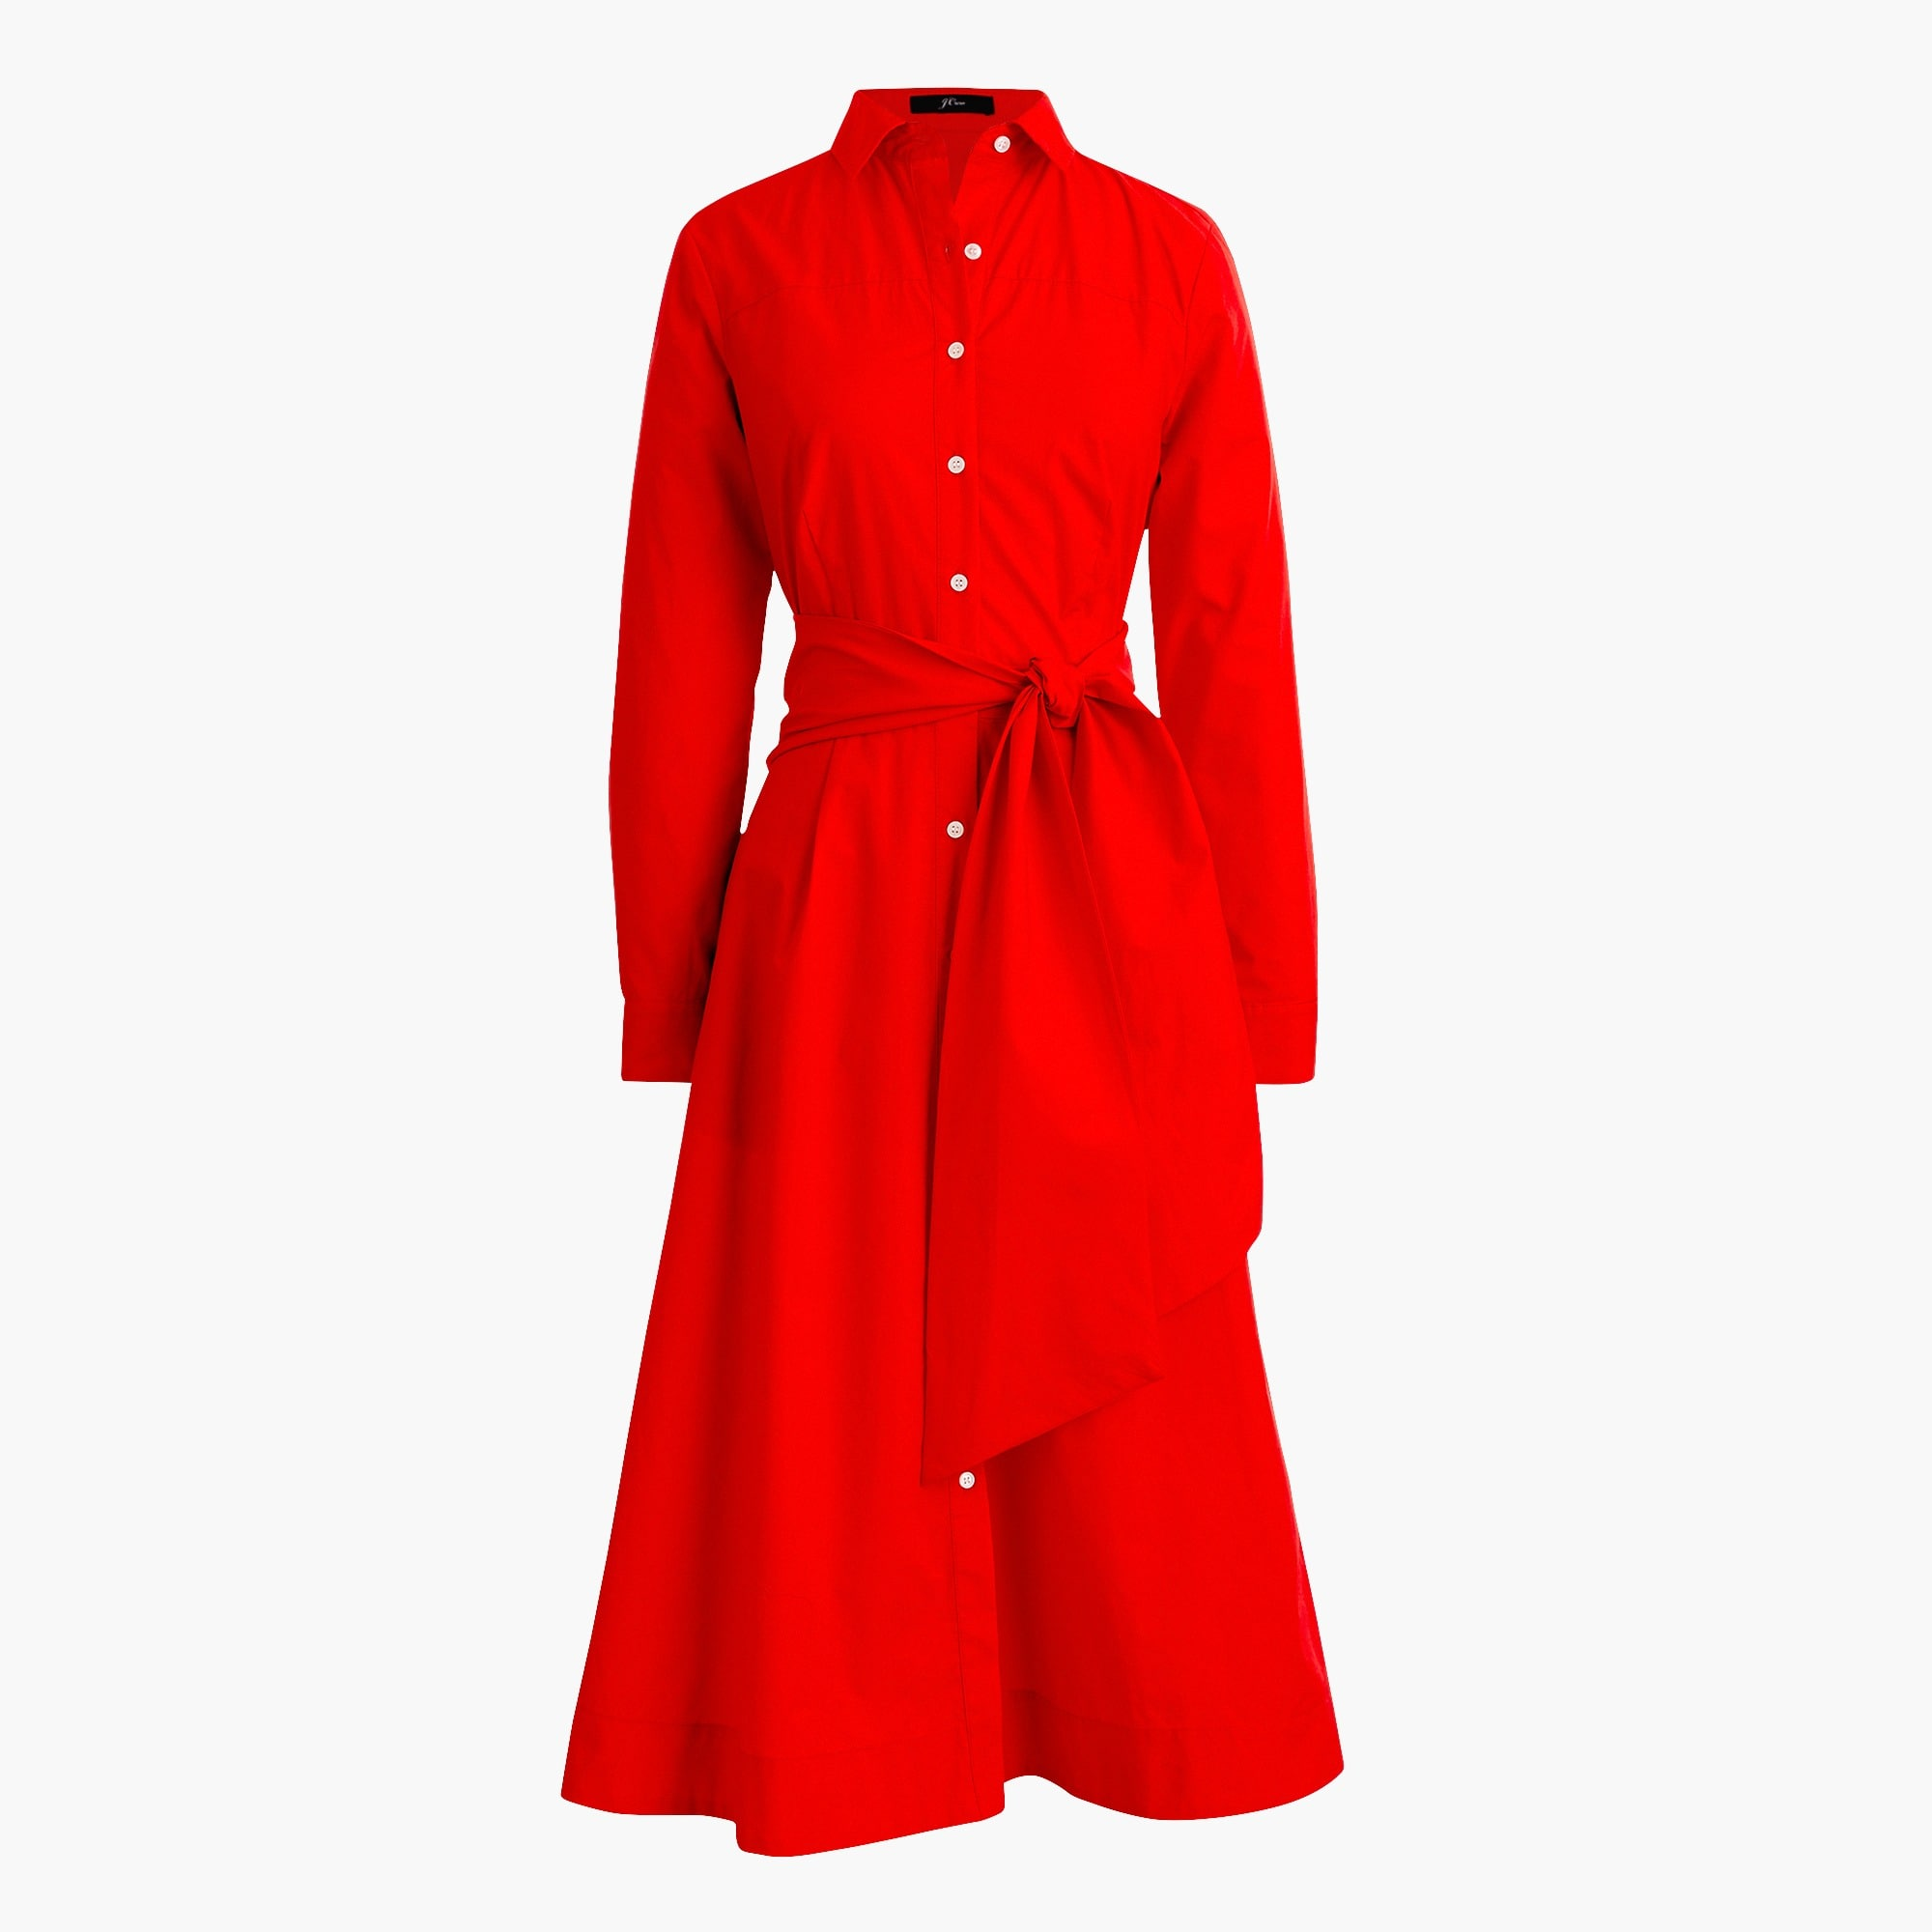 Tie-waist shirtdress in cotton poplin